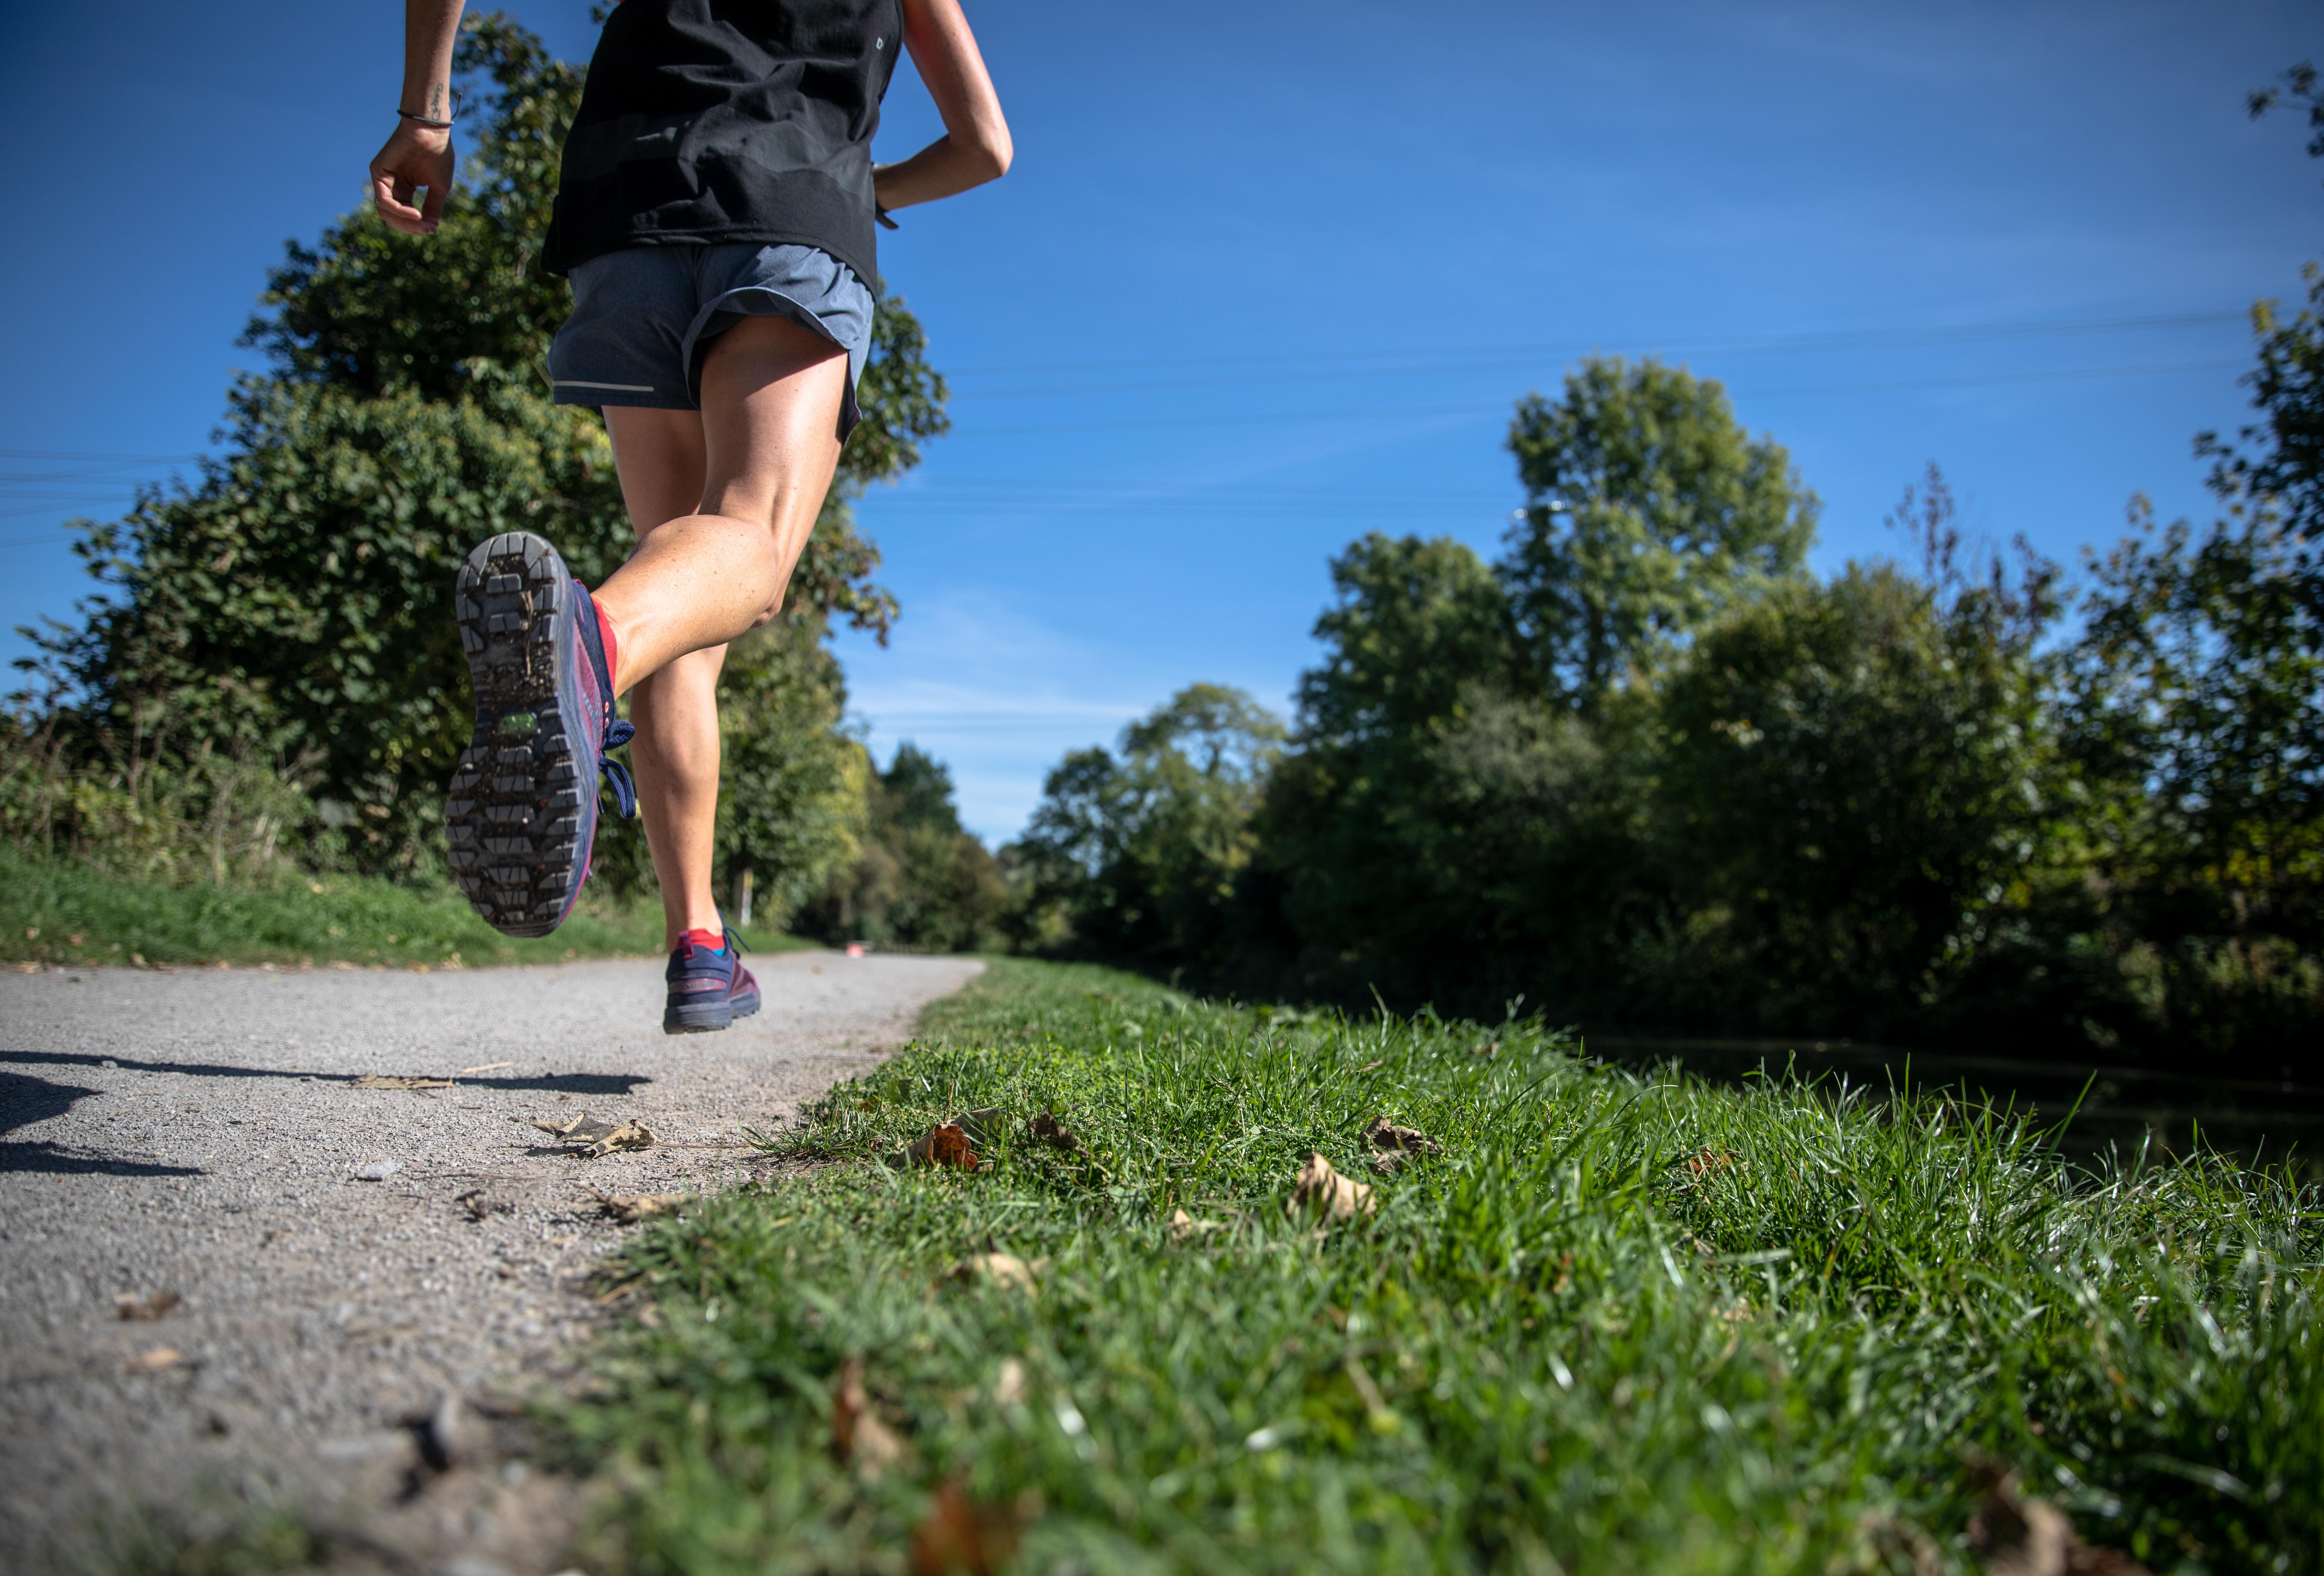 Le jogging, un sport simple et efficace